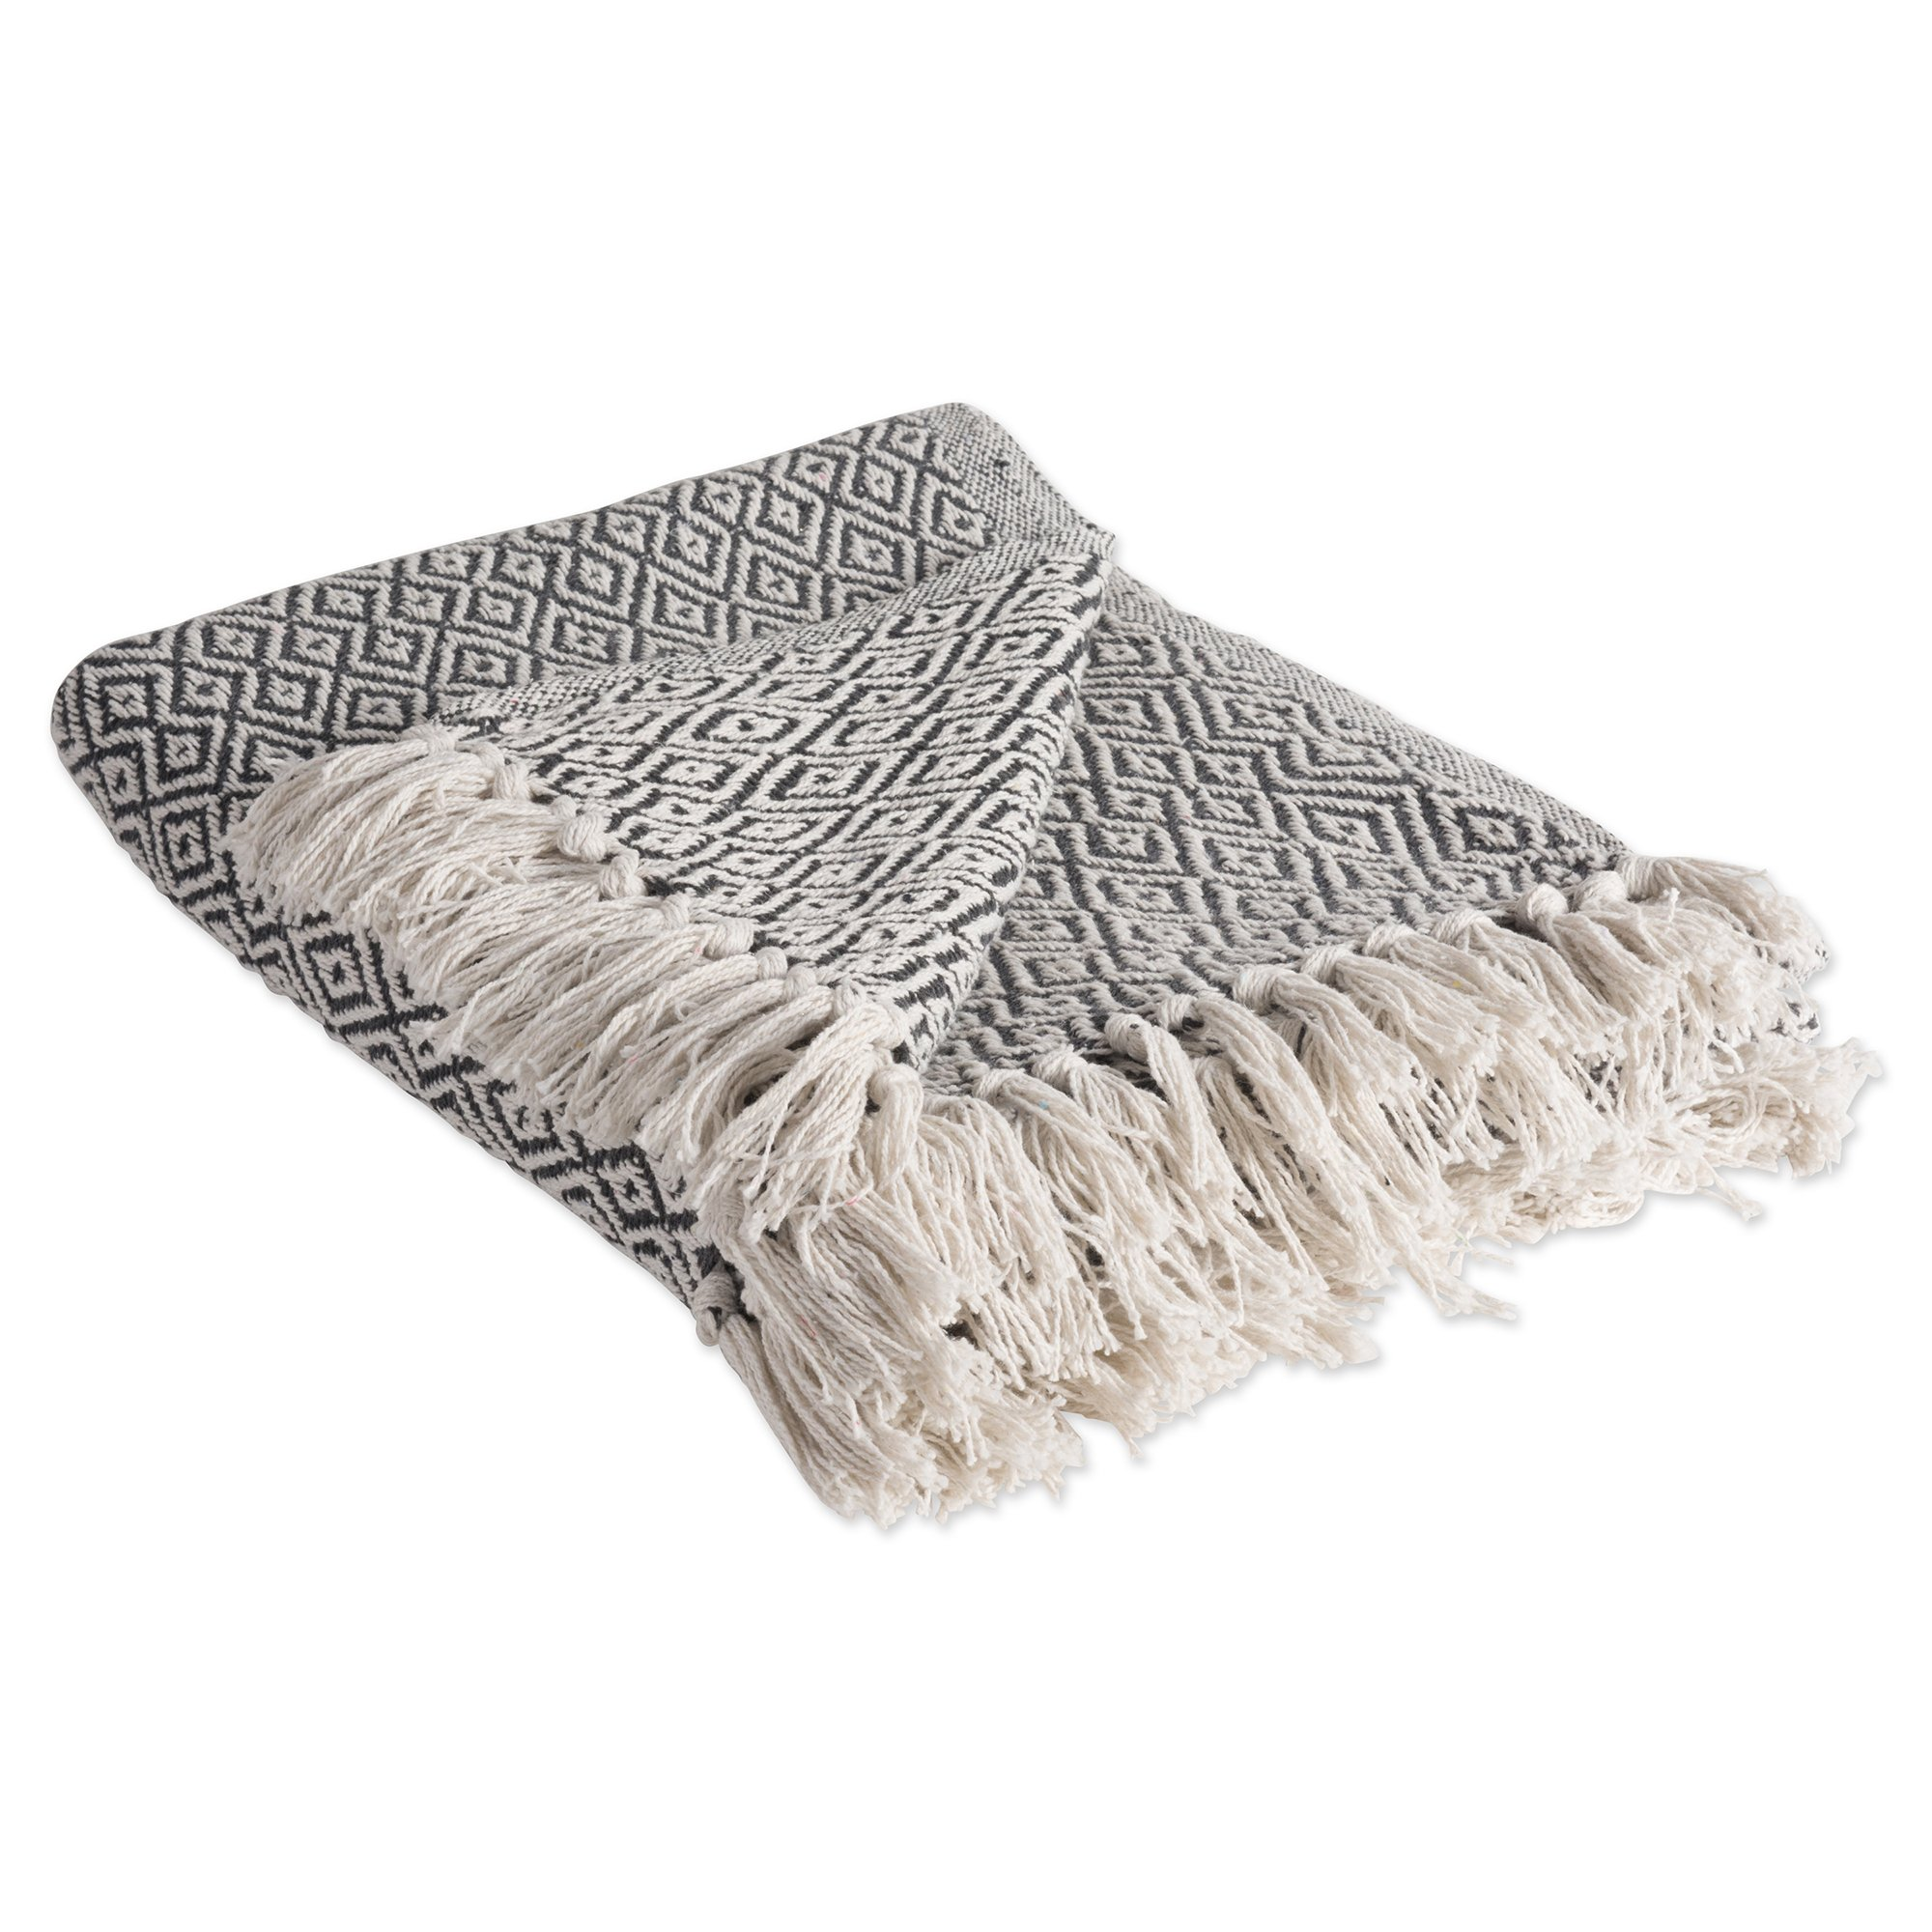 DII Rustic Farmhouse Cotton Diamond Blanket Throw with Fringe For Chair, Couch, Picnic, Camping, Beach, & Everyday Use , 50 x 60'' - Fields of Diamond Mineral by DII